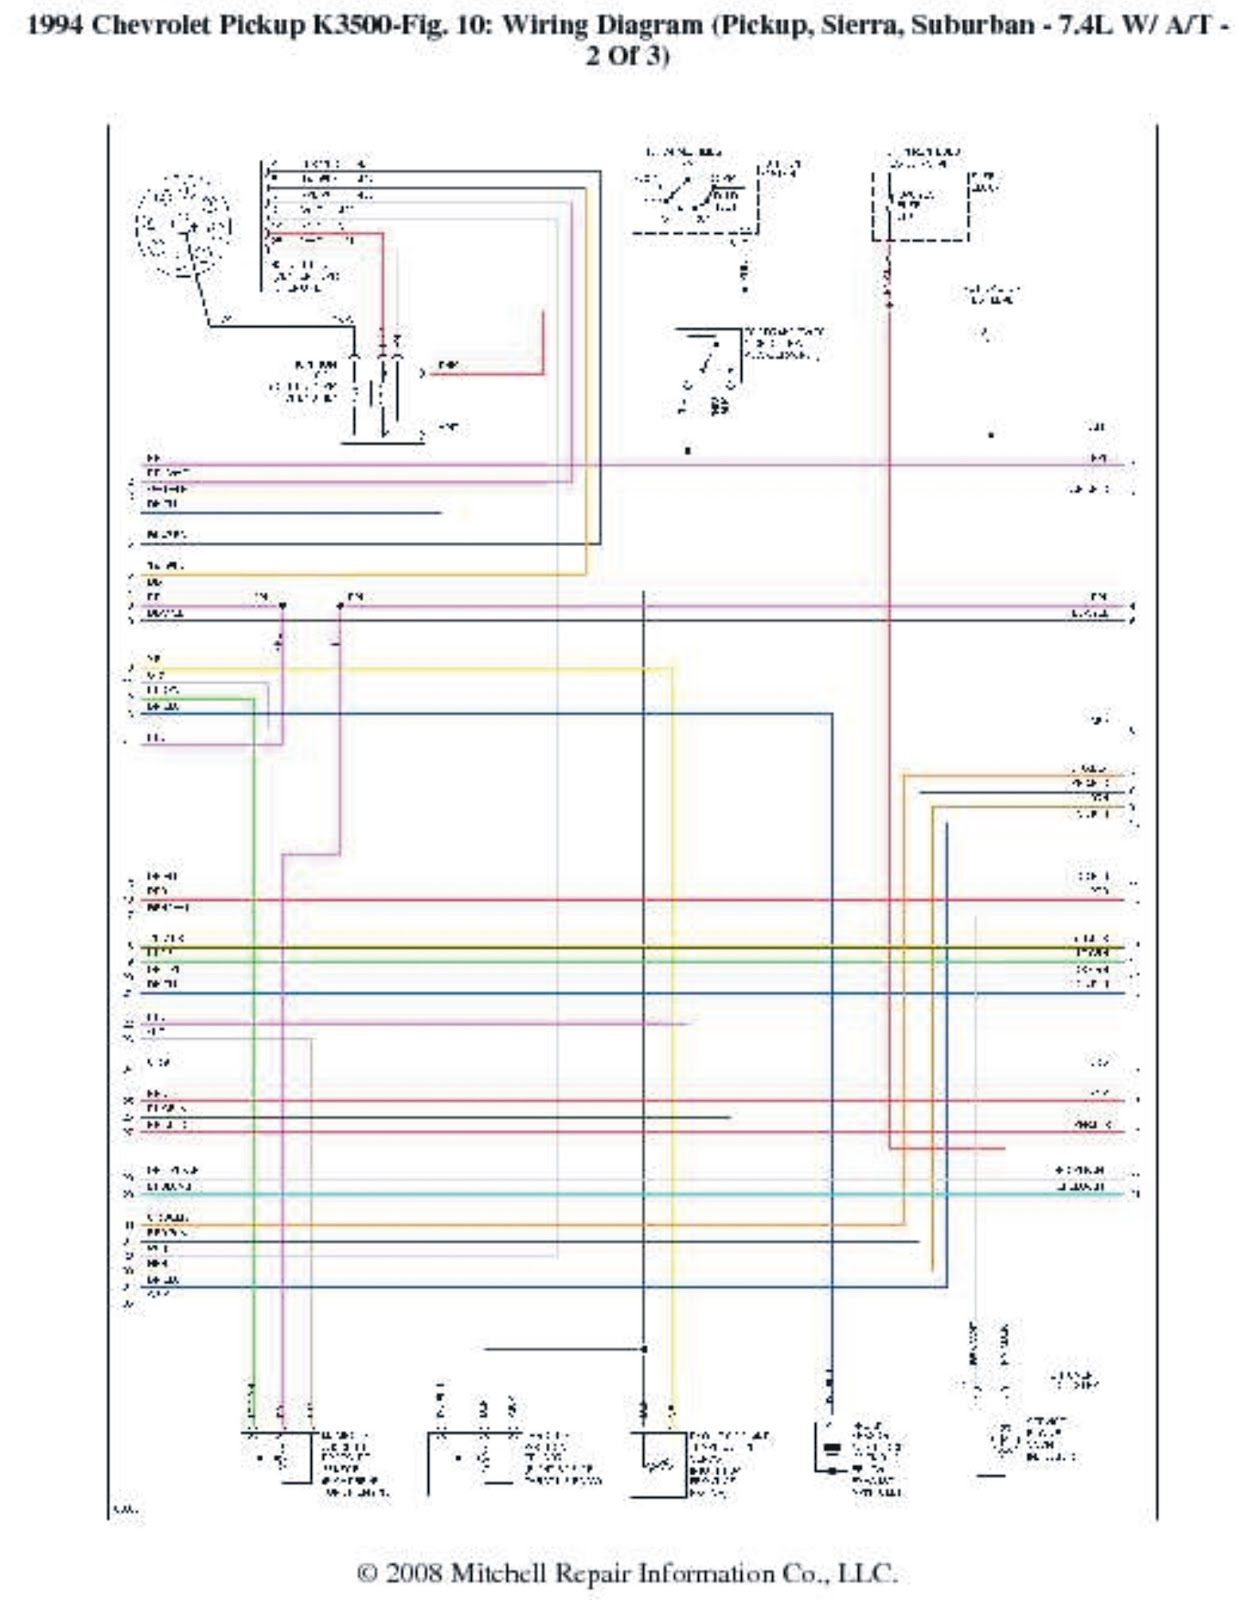 1994+chevrolet+pick+up+K3500 may 2011 wiring diagrams center 1982 chevy truck engine wiring diagram at fashall.co